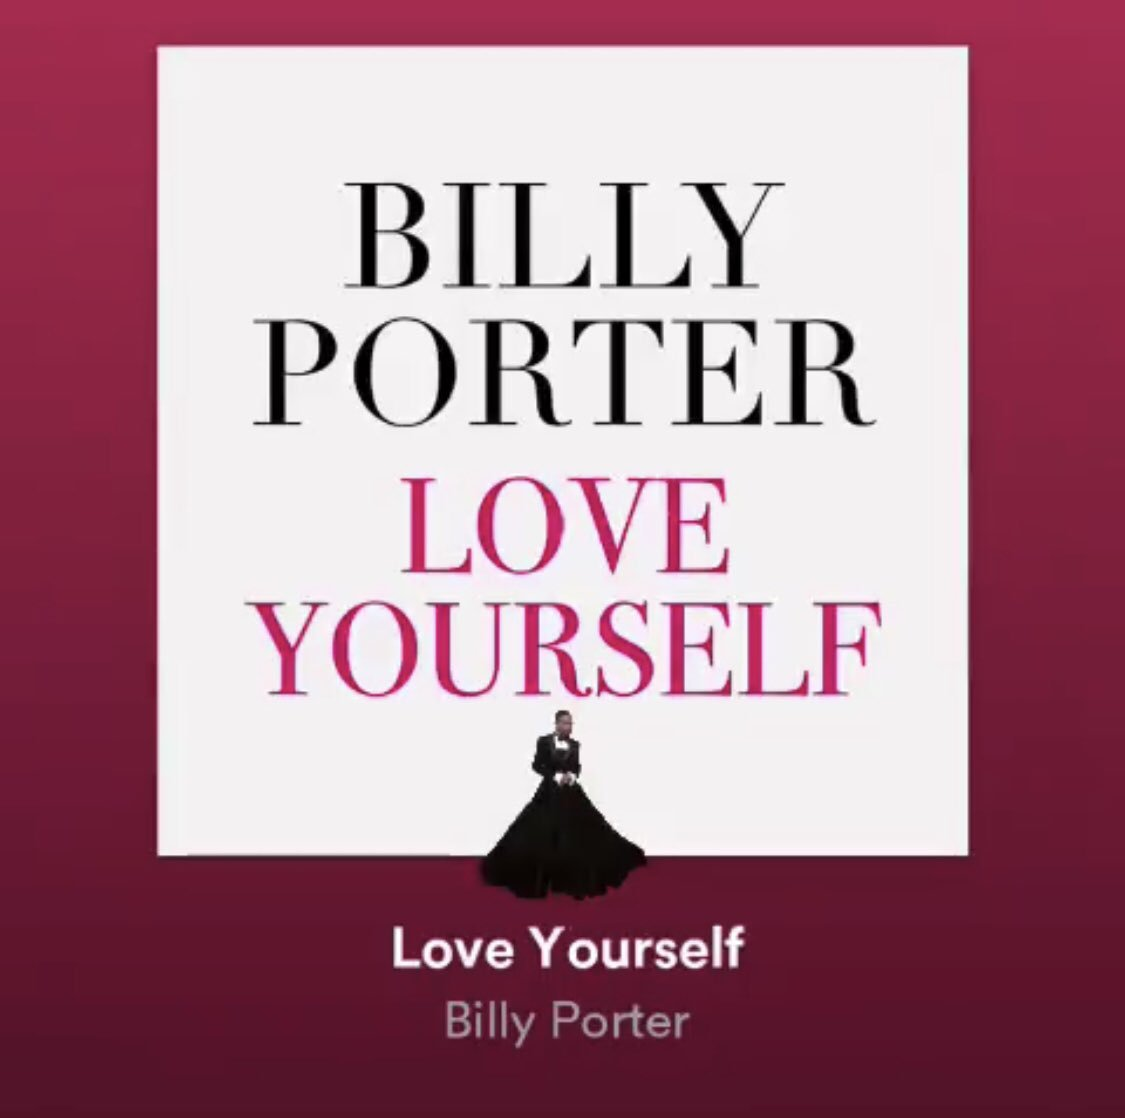 Congratulations to @theebillyporter for going NUMBER ONE on the @billboard Dance Chart!!! 👏🏻👏🏻👏🏻